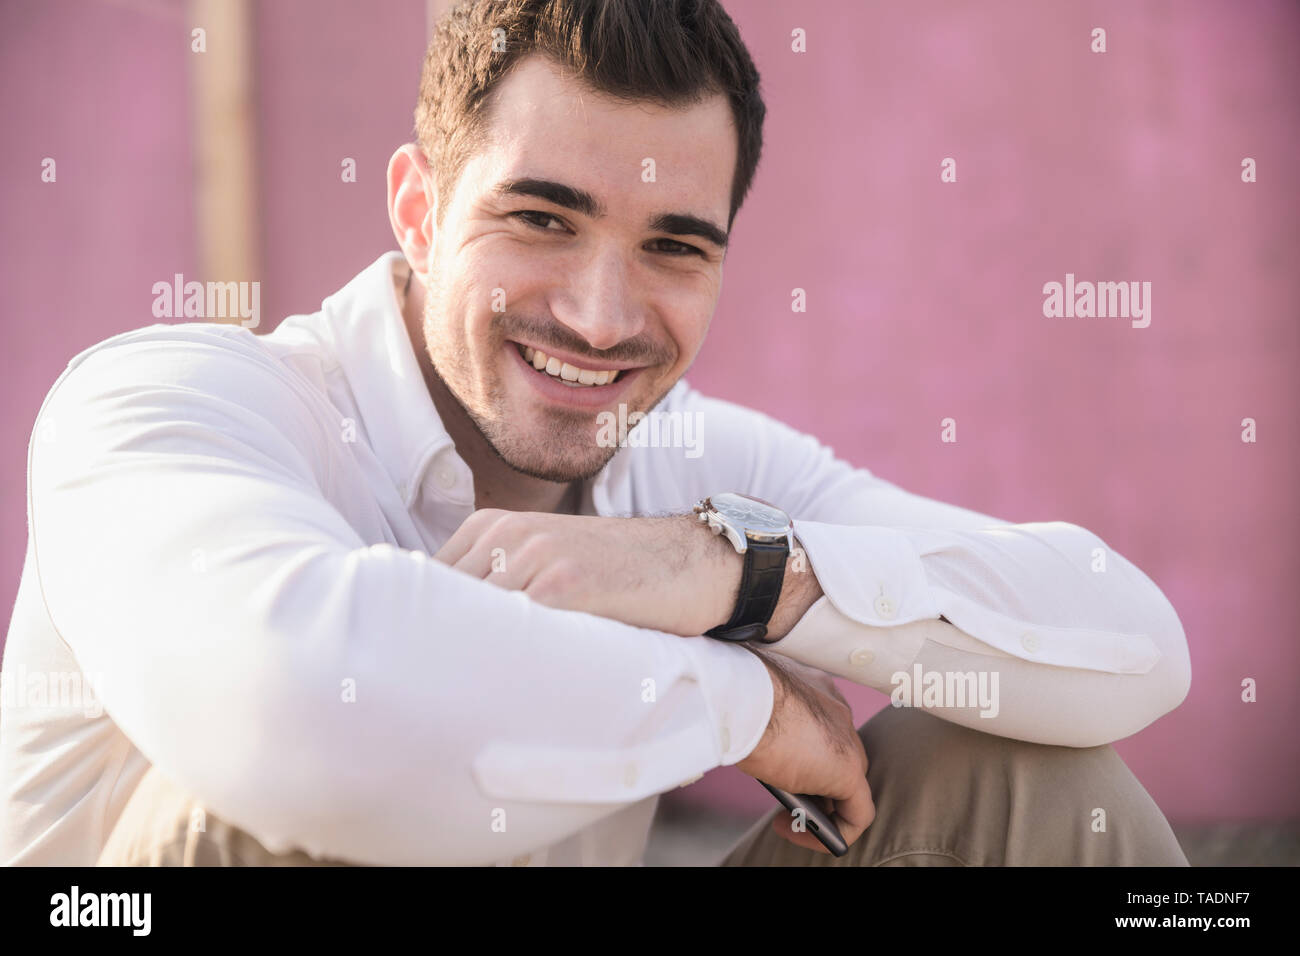 Portrait of smiling young man in front of pink wall - Stock Image